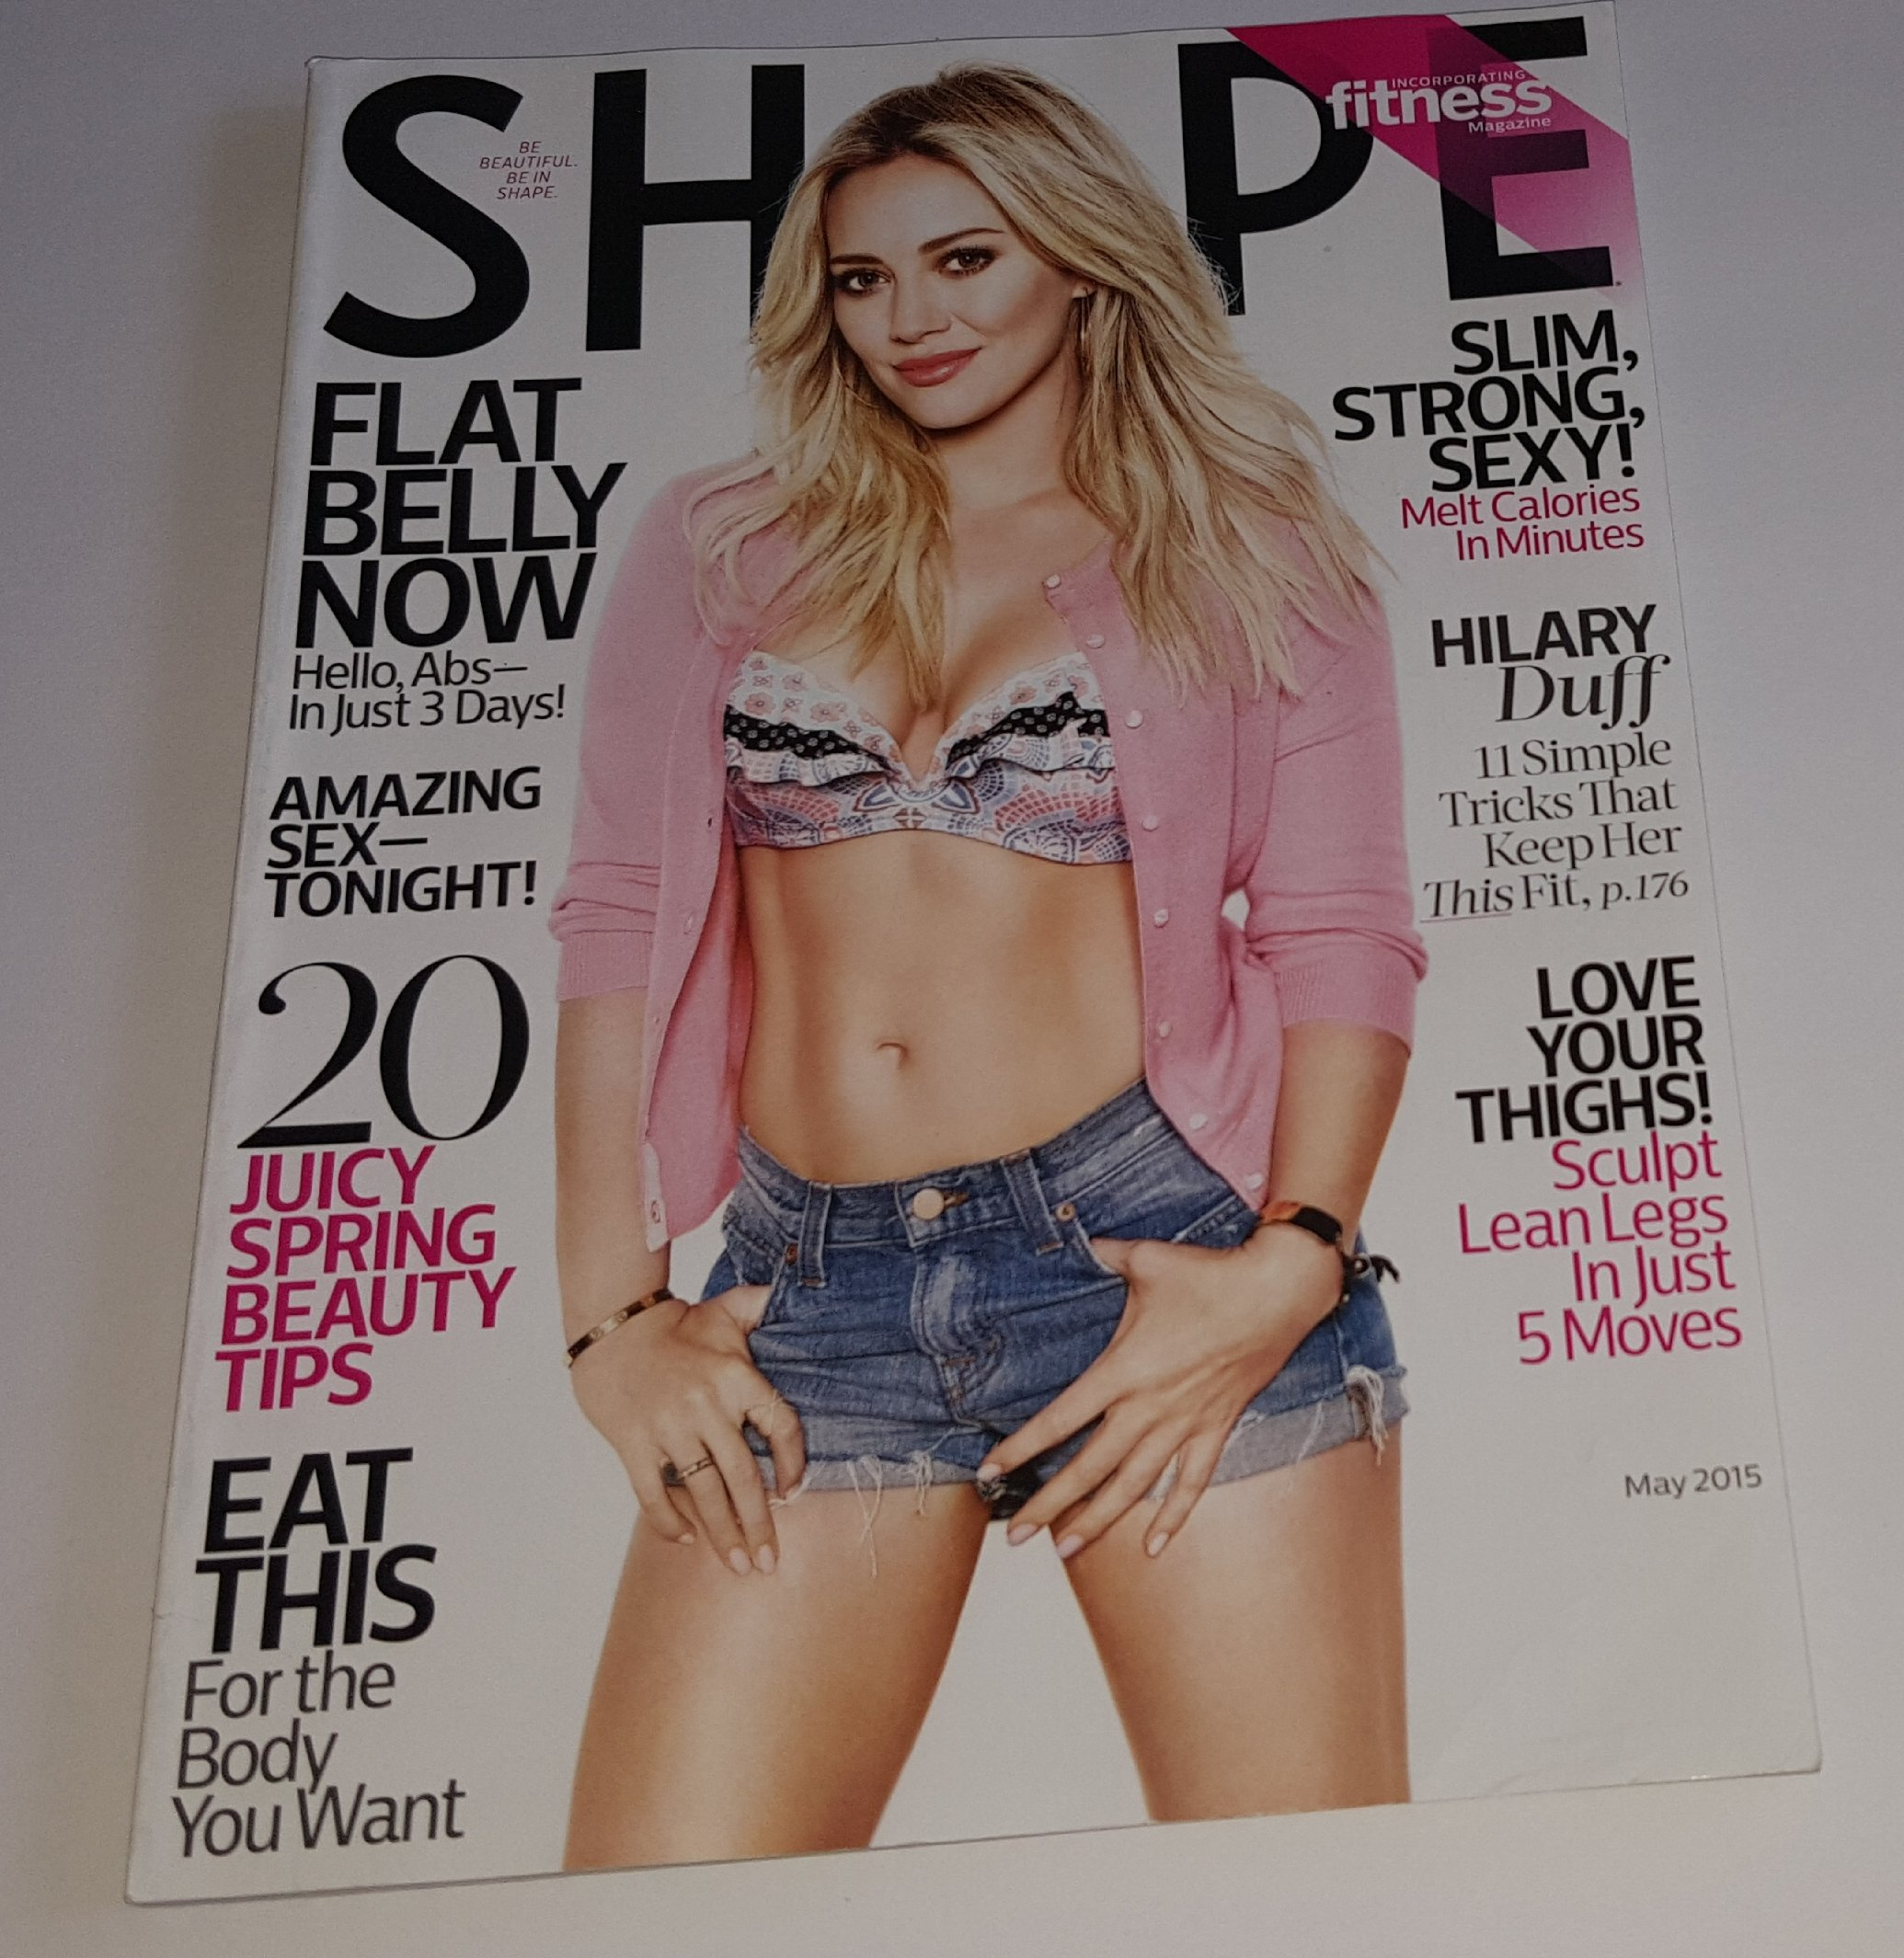 63f7efcdc1276 Shape May 2015 Hilary Duff 11 Simple Tricks That Keep Her This Fit Single  Issue Magazine – 2015